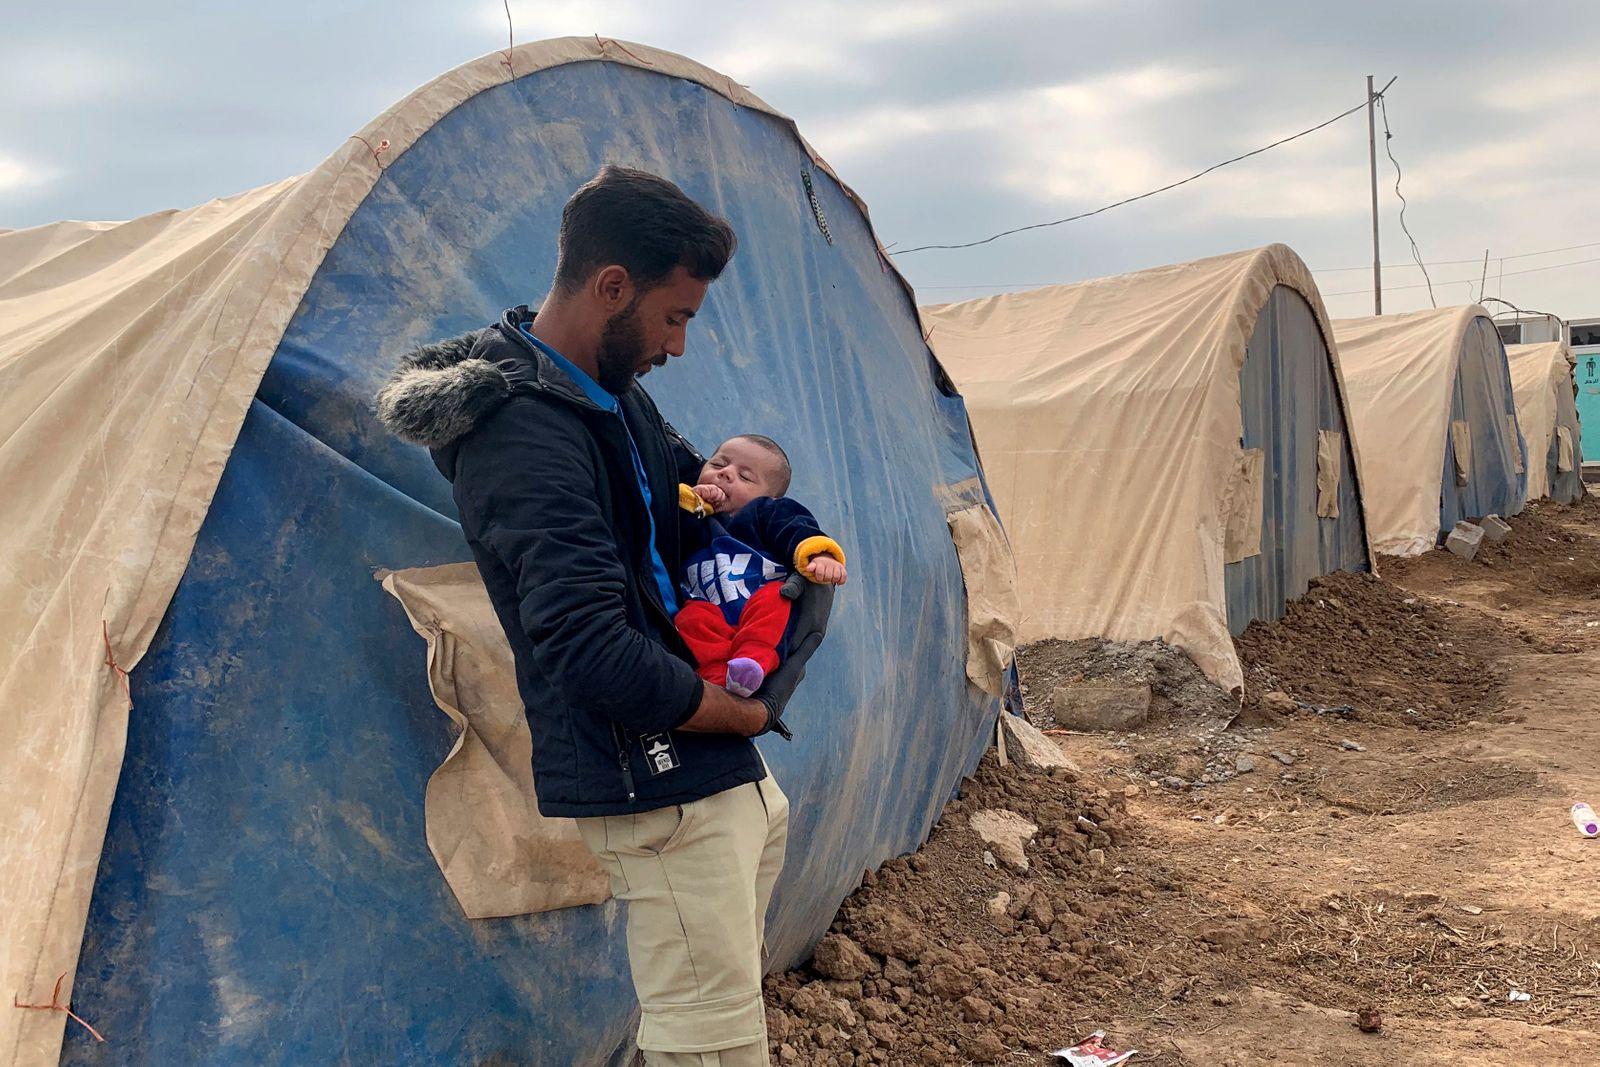 Taama al-Owais, carries his 3-month-old son as he stands in front of his tent in an informal camp in the town of Balad